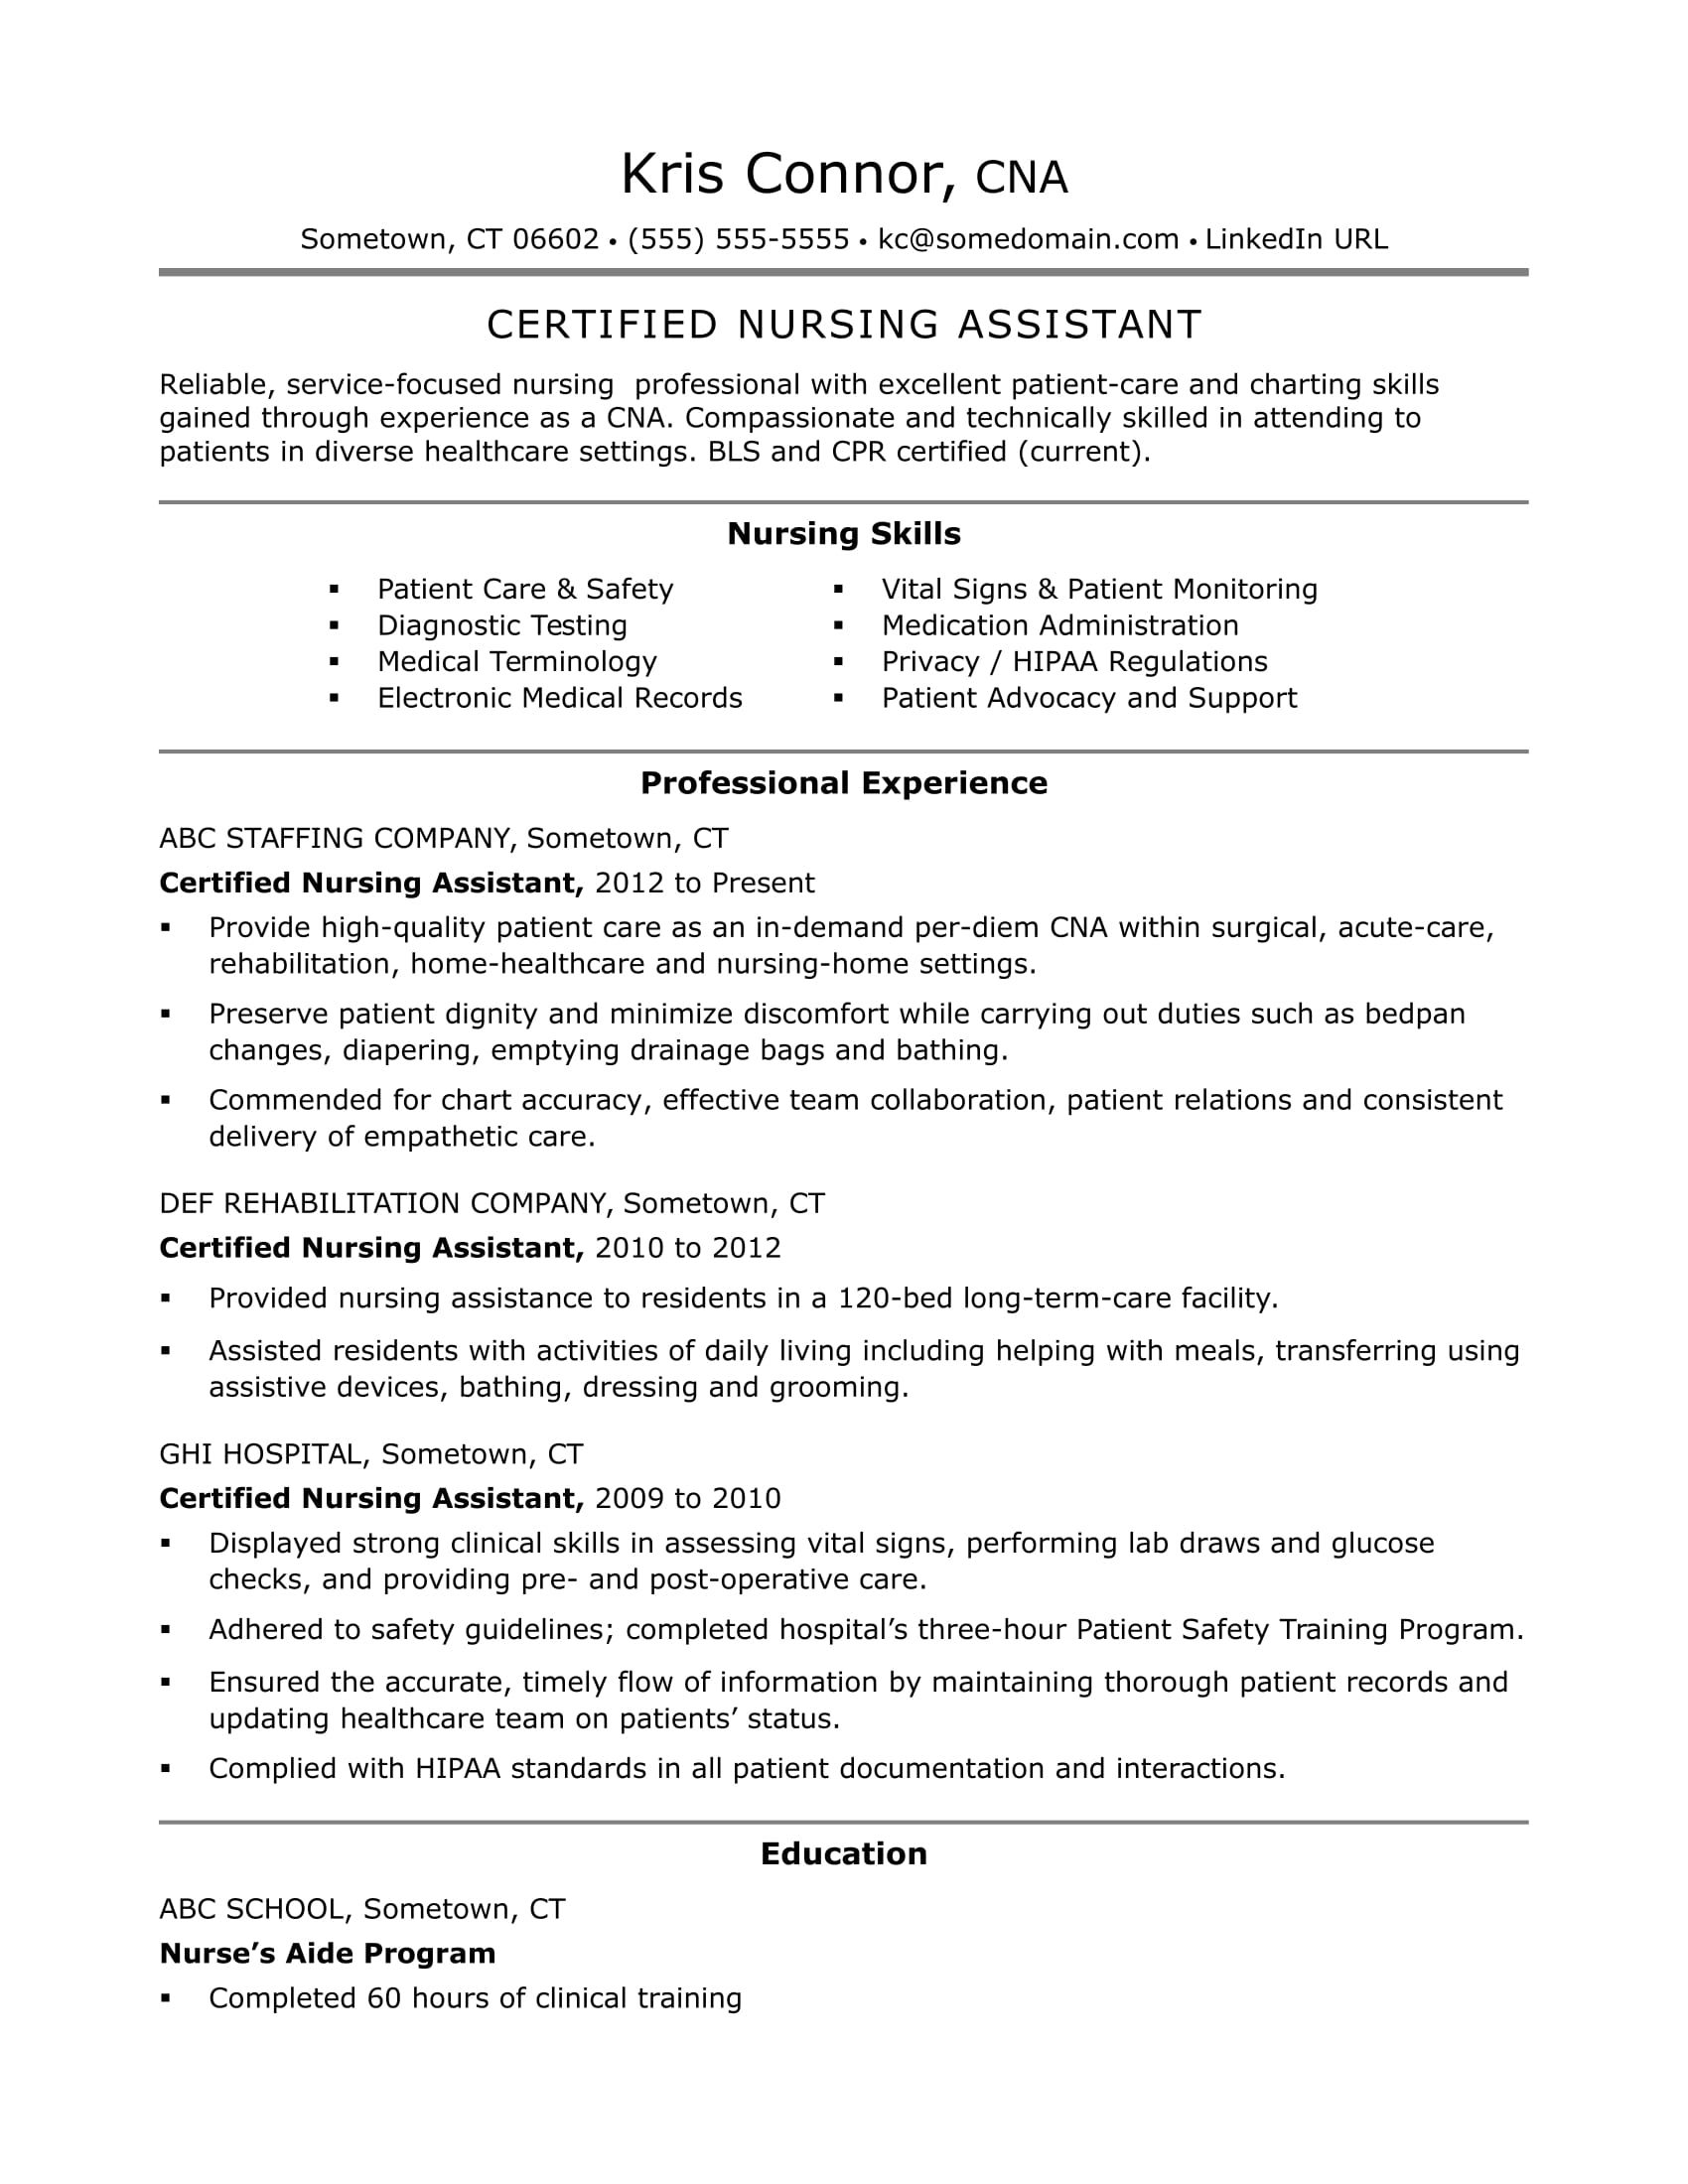 CNA Resume Example Intended For Certified Nursing Assistant Resume